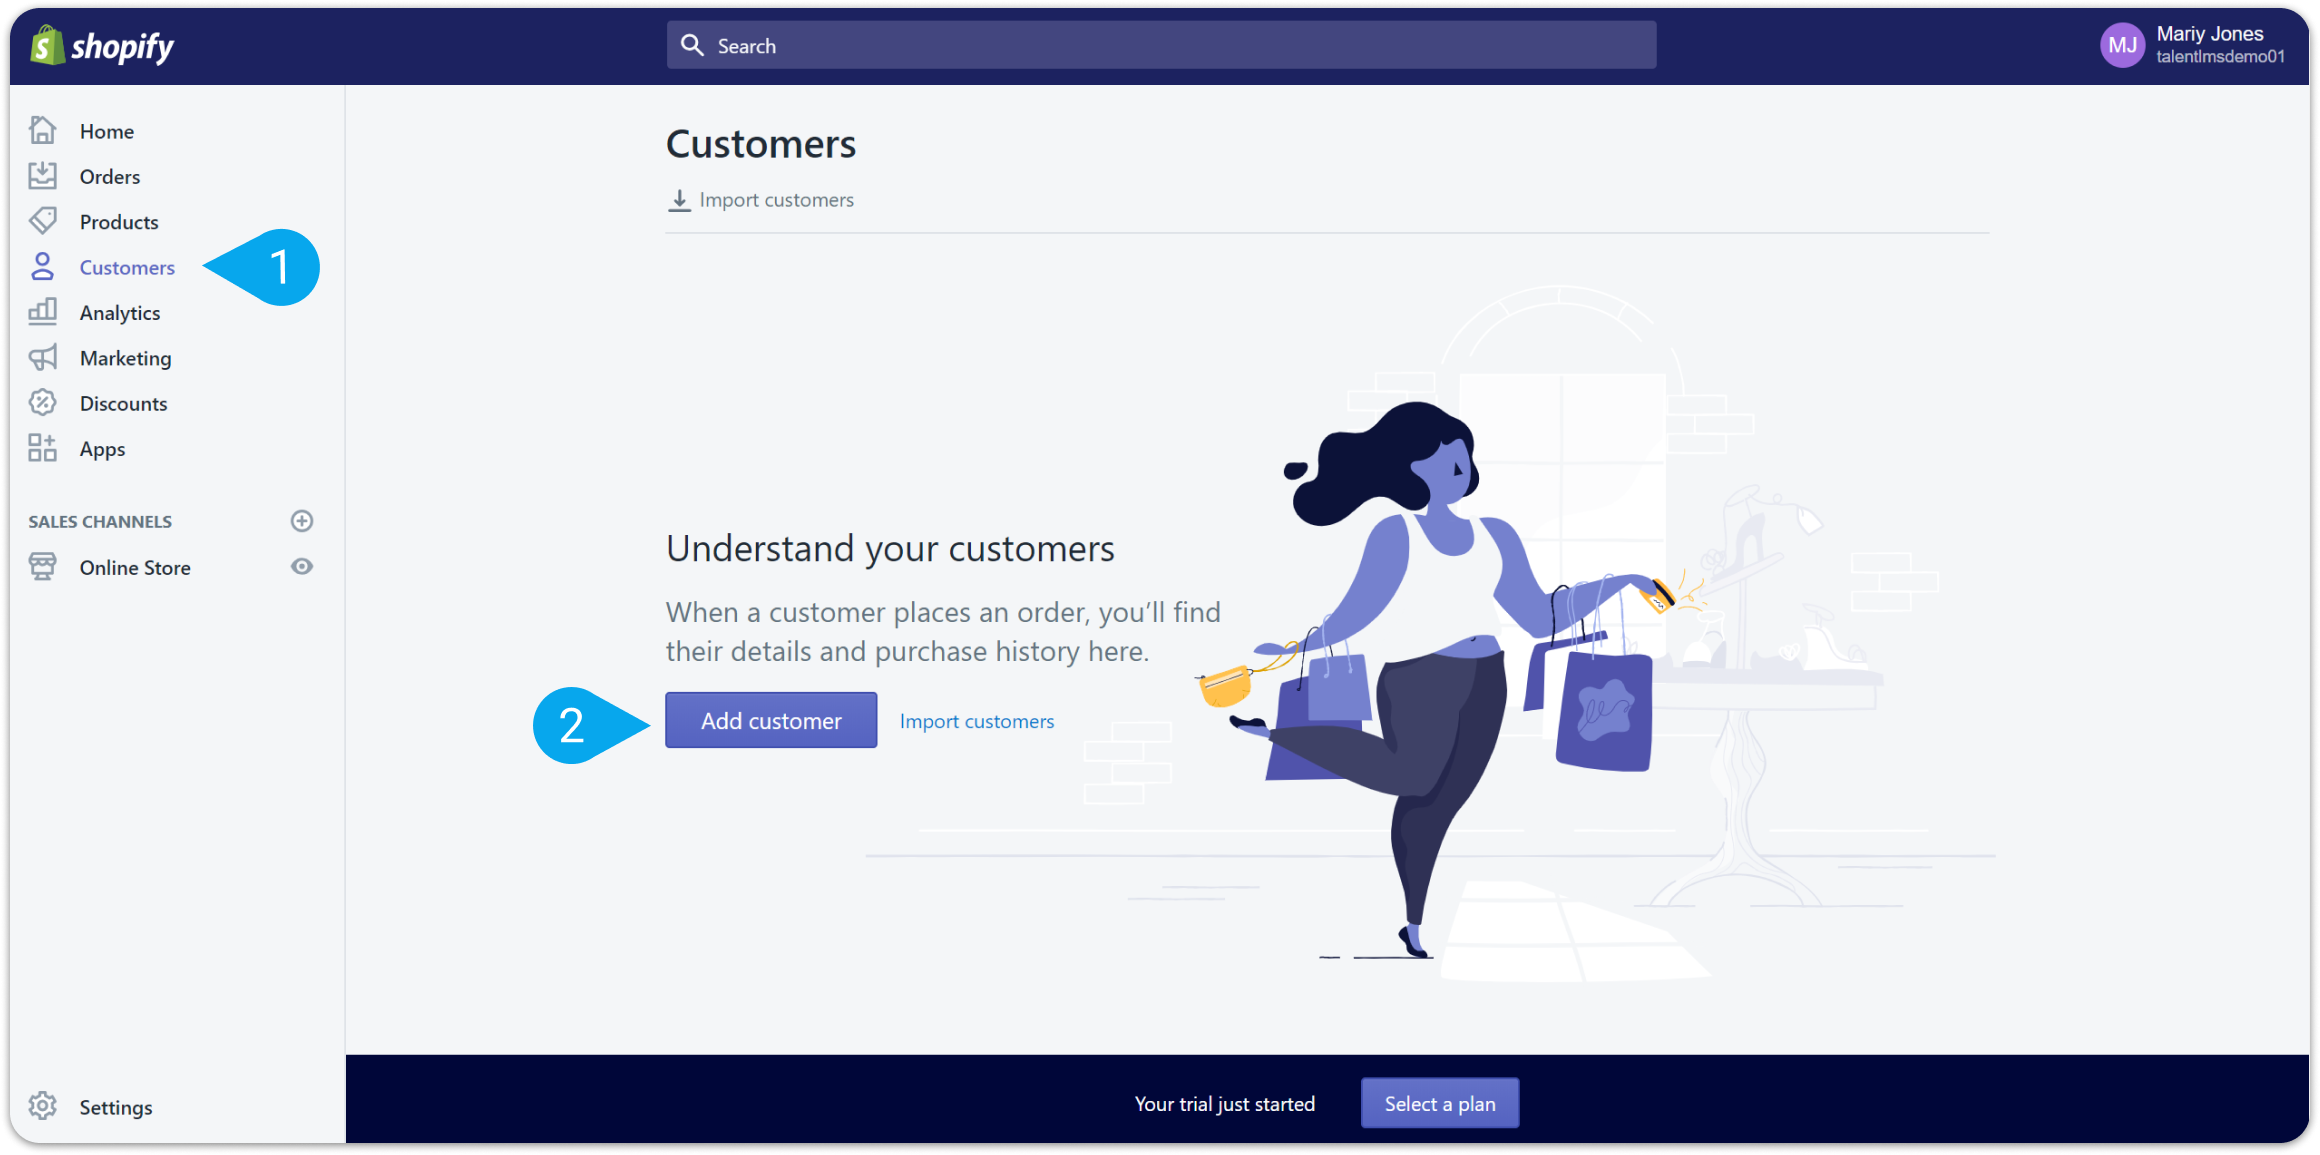 How to integrate Shopify and TalentLMS through Zapier